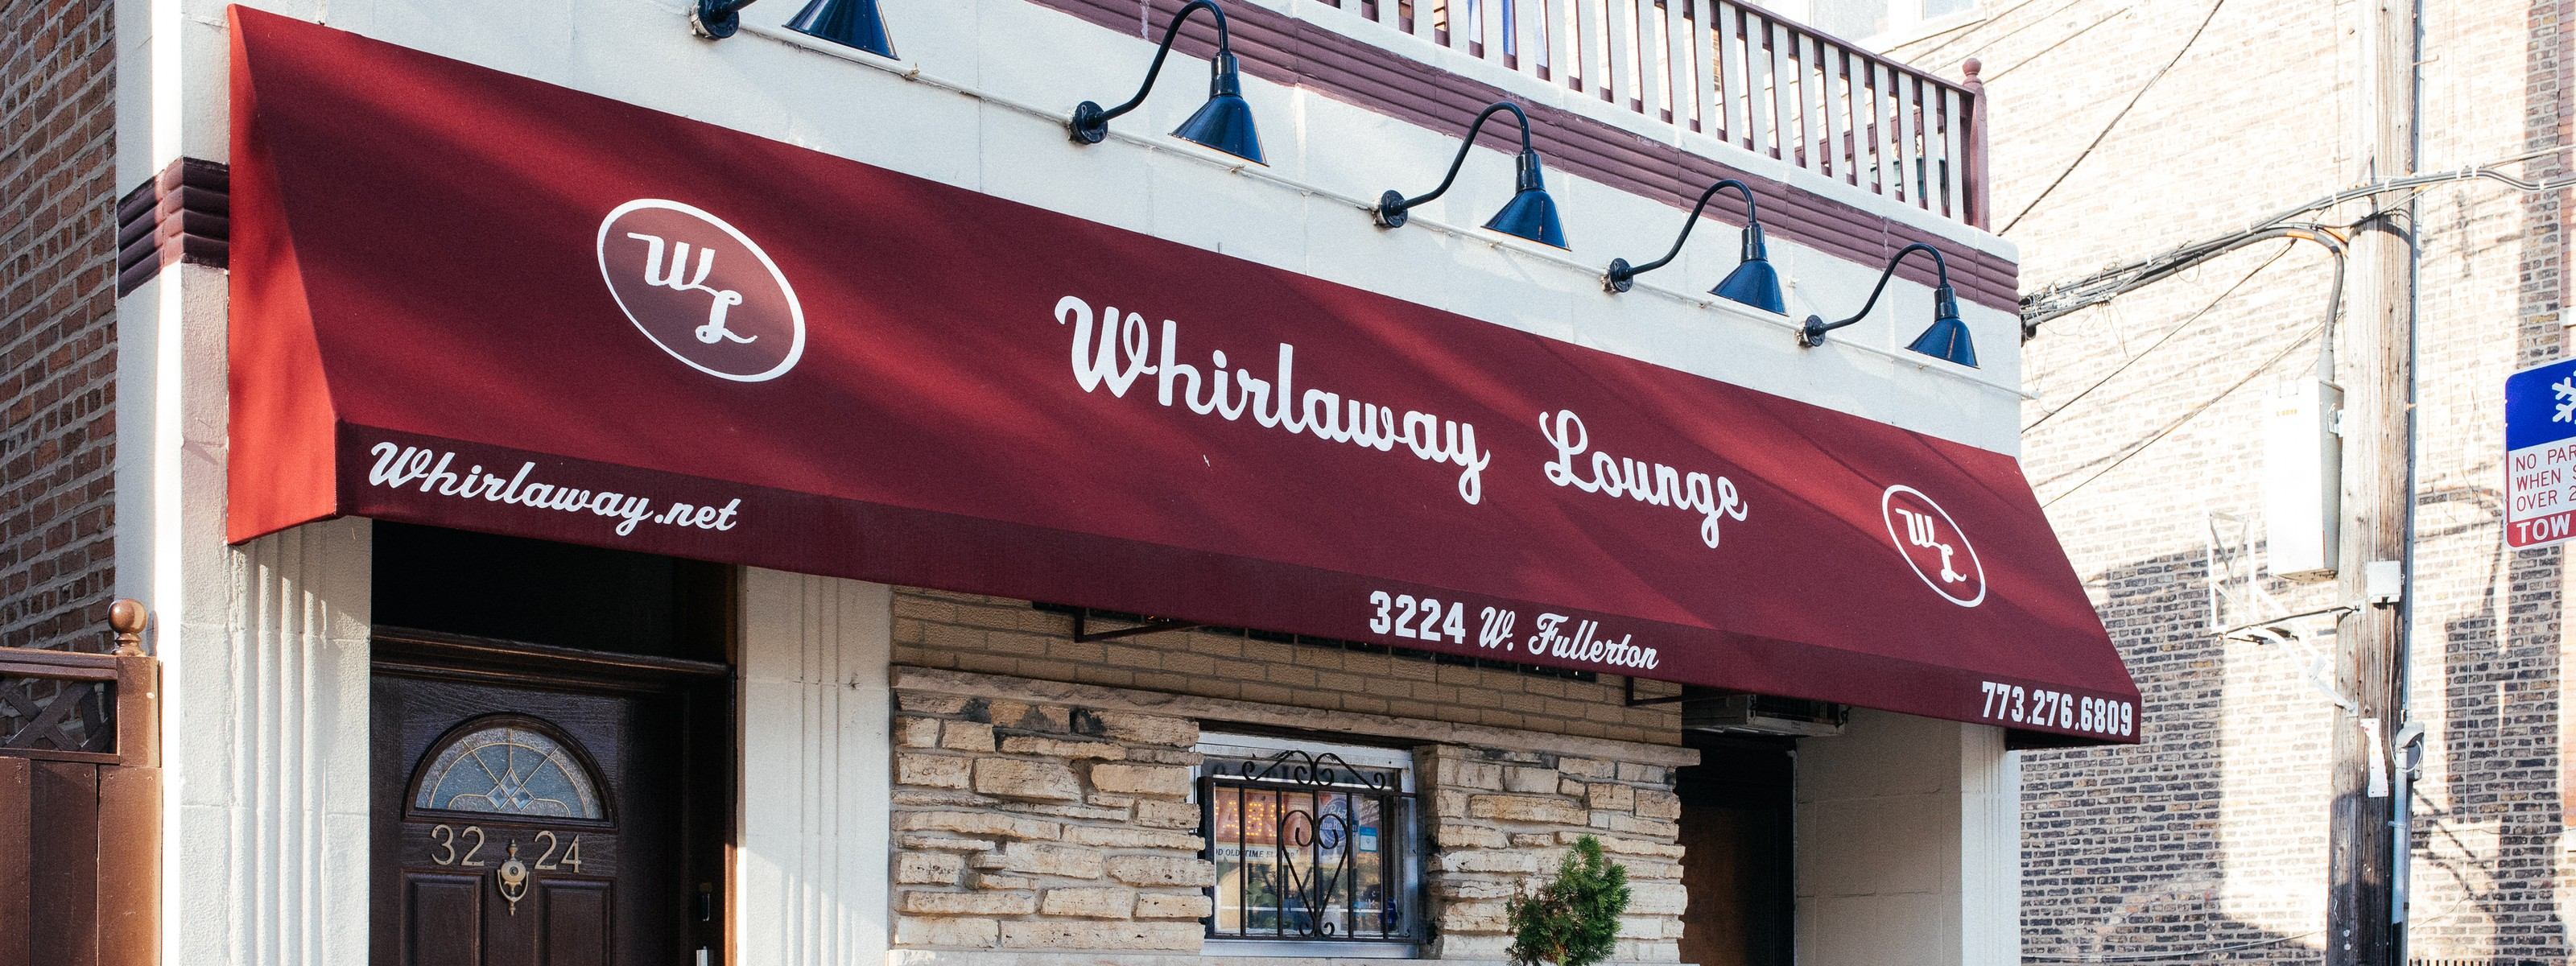 Whirlaway Lounge - Logan Square - Chicago - The Infatuation